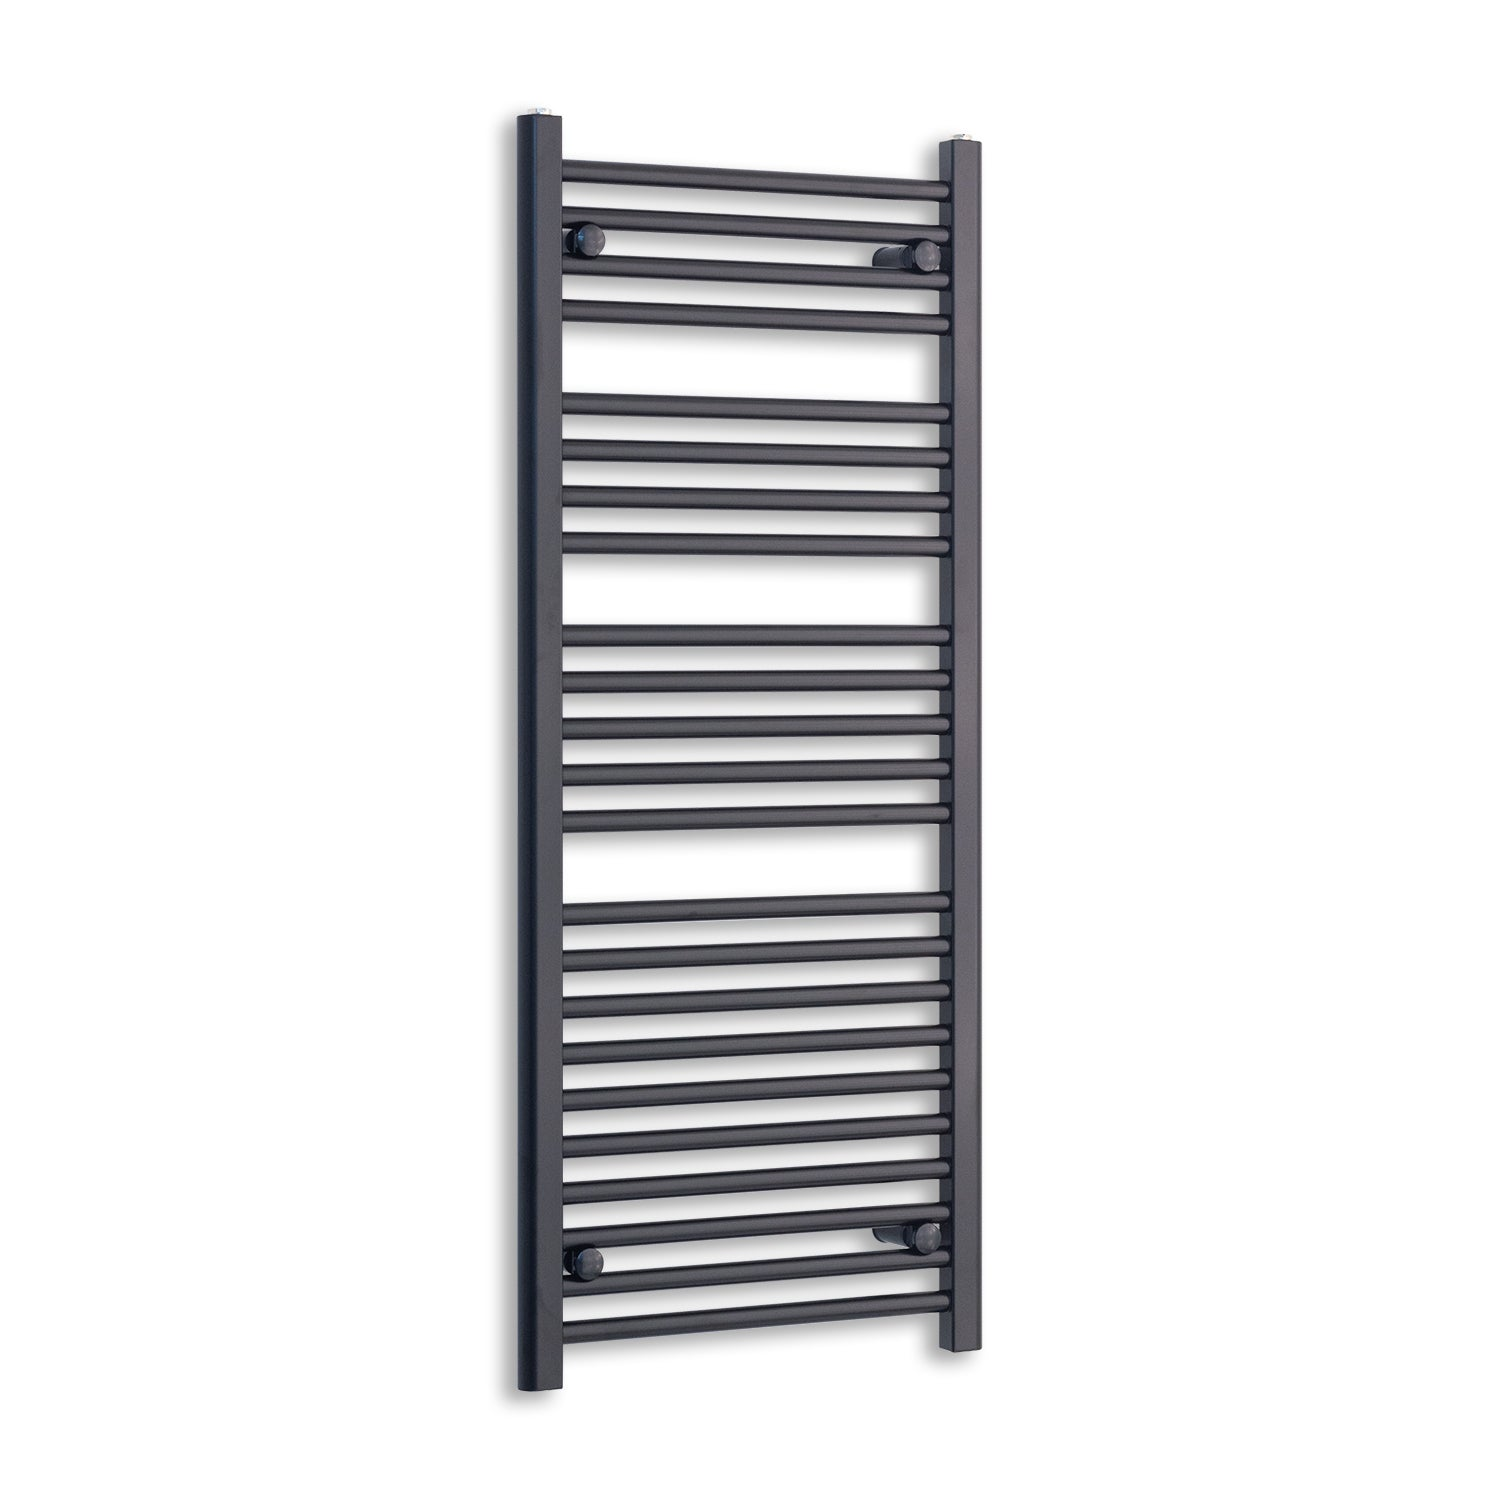 600mm Wide 1200mm High Flat Black Heated Towel Rail Radiator,Towel Rail Only